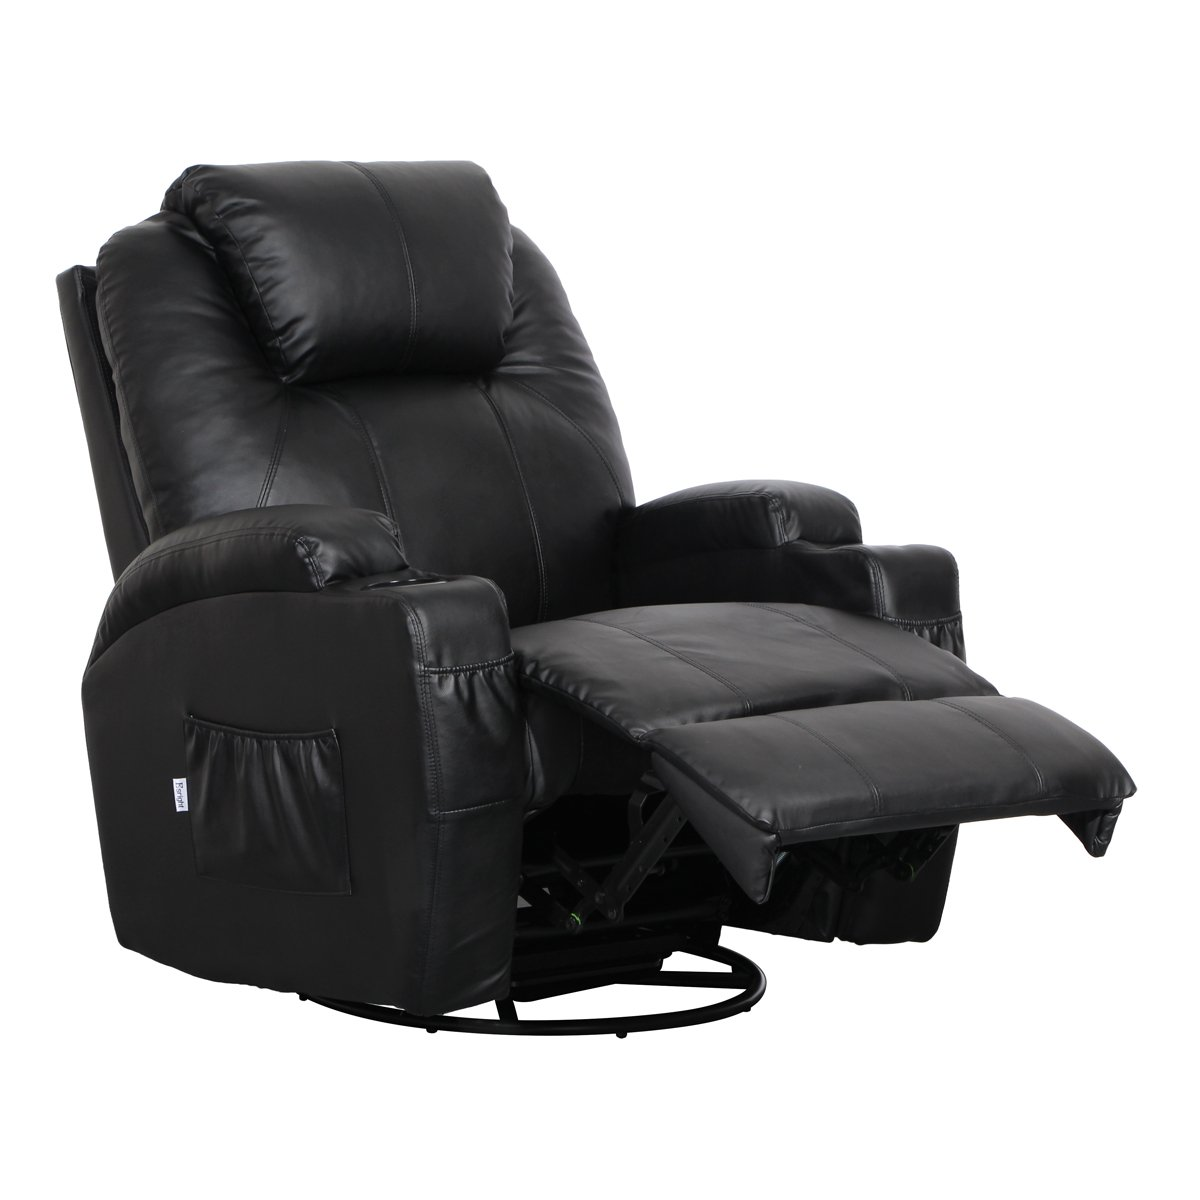 Massage Therapy Leather Chair Recliner Heat Club Seat